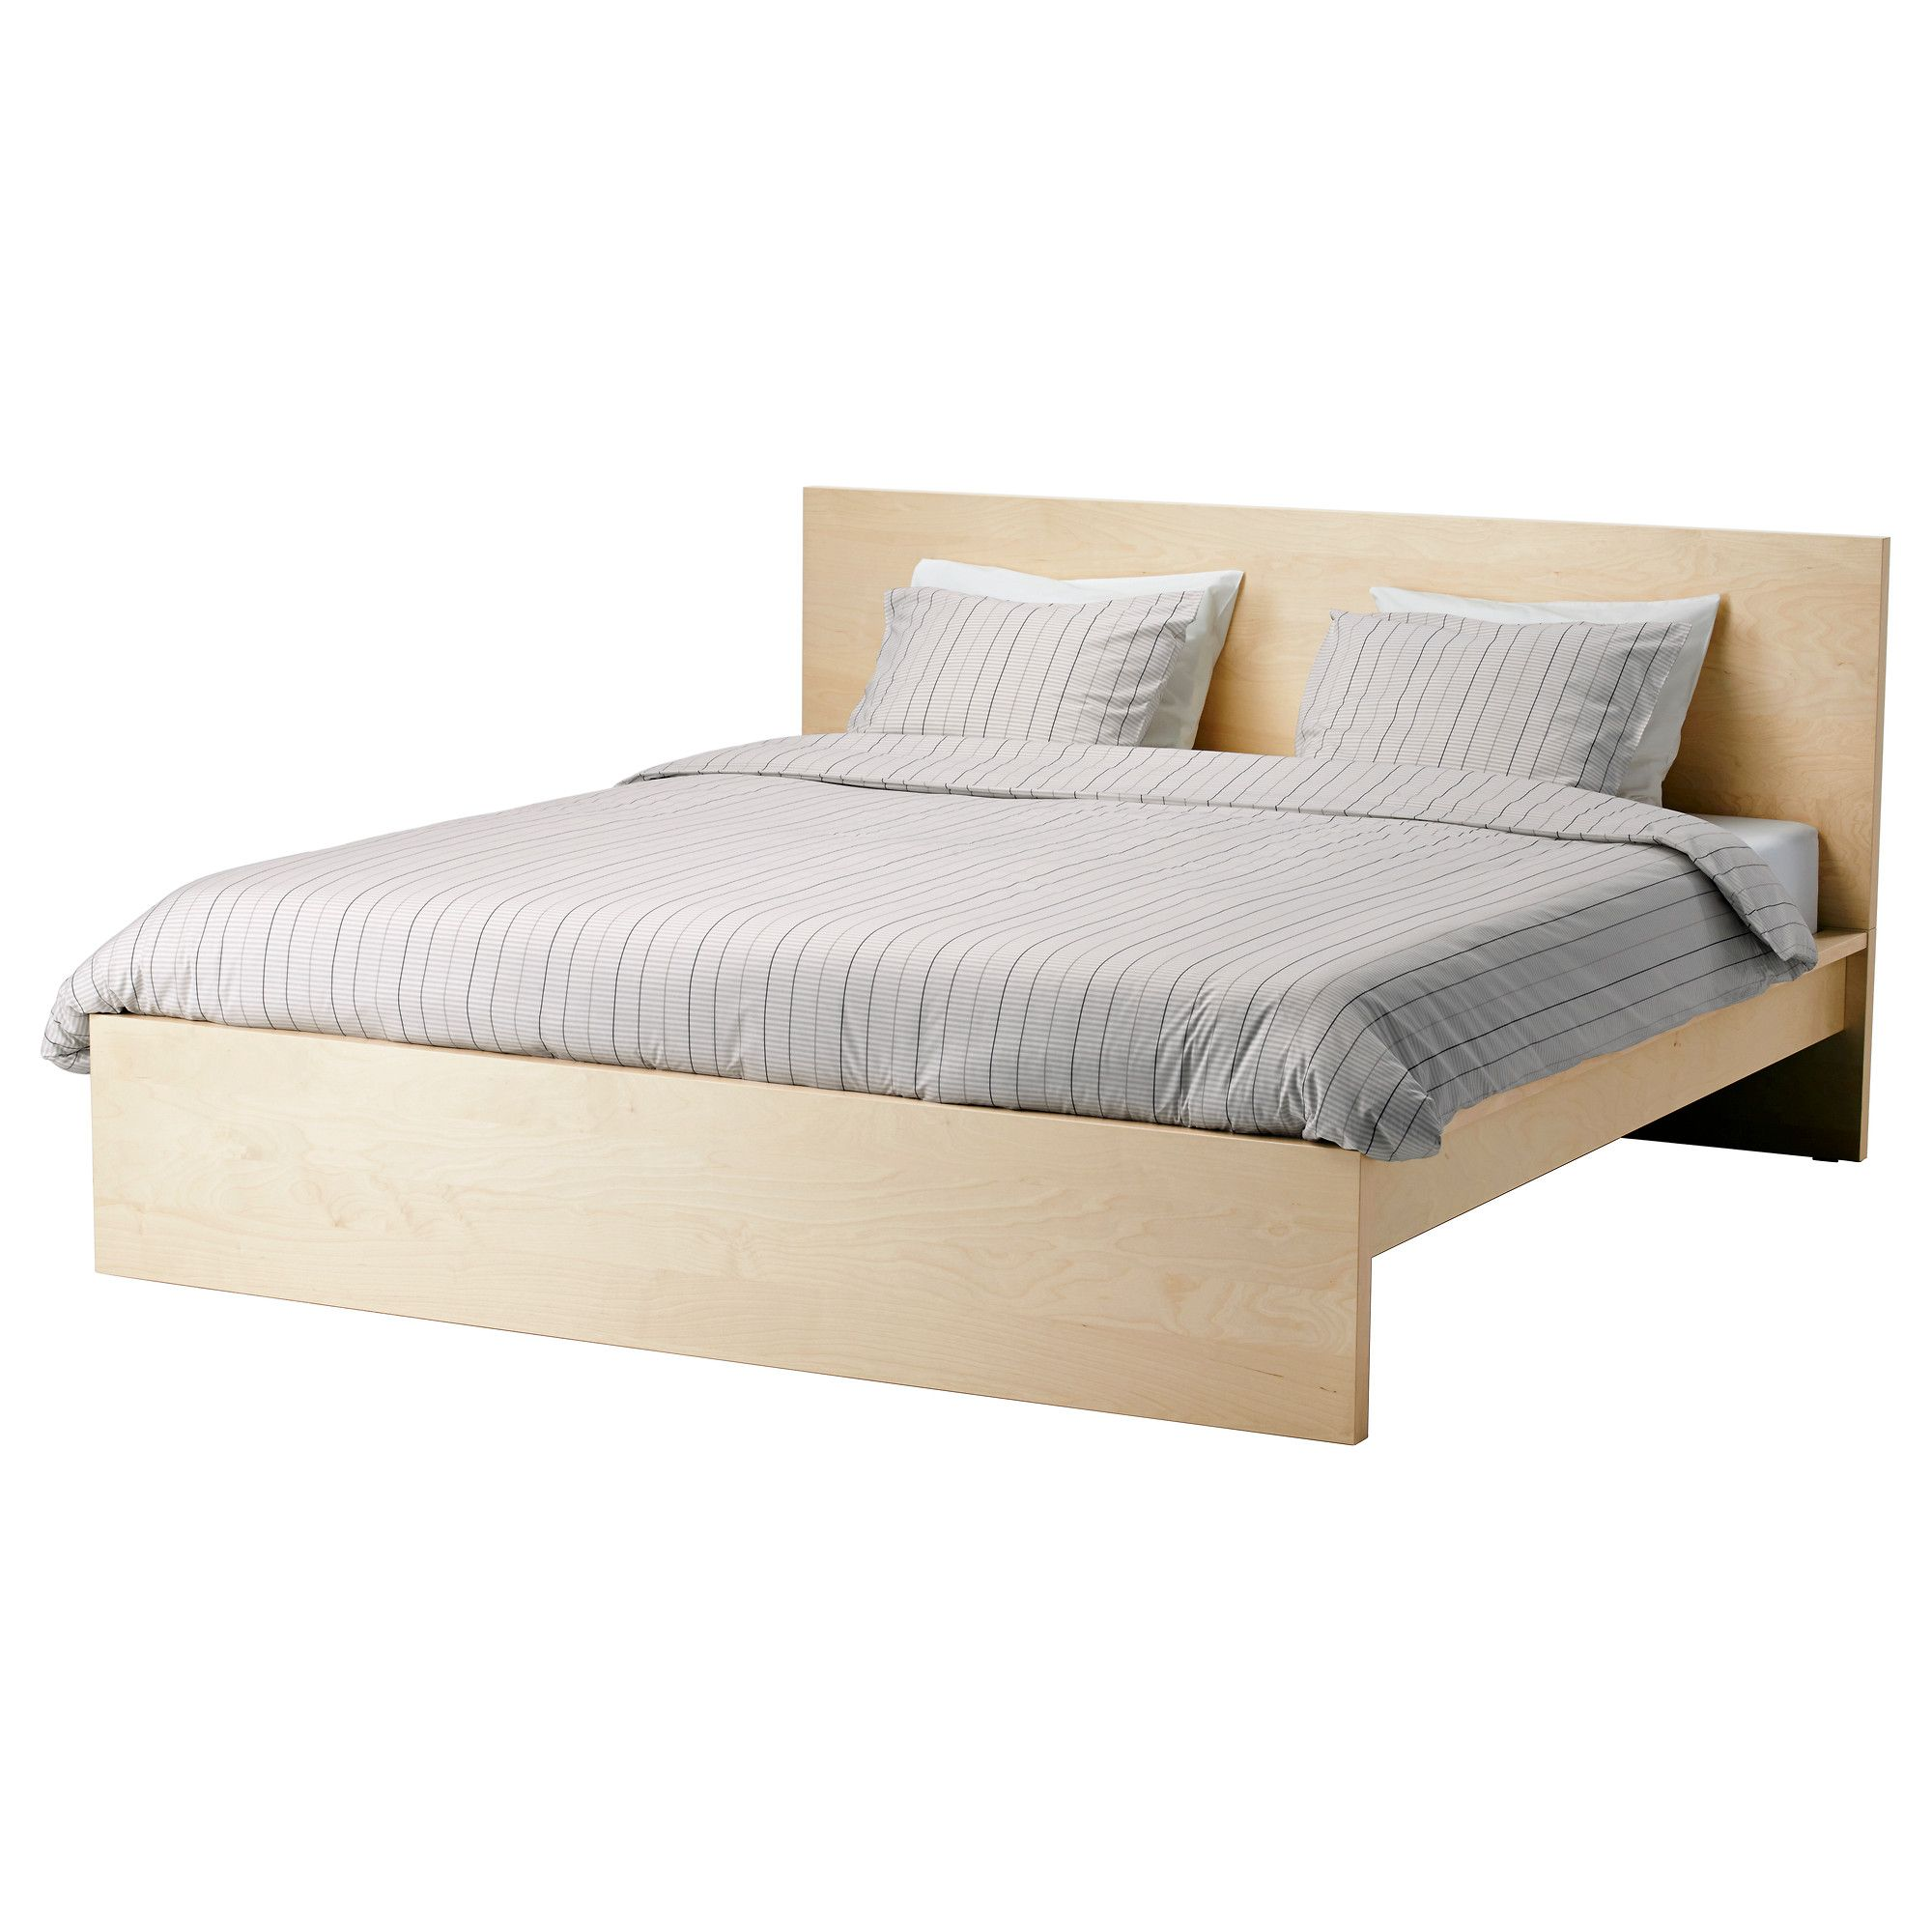 Us Furniture And Home Furnishings Bed Frame Ikea Malm Bed Ikea Bed